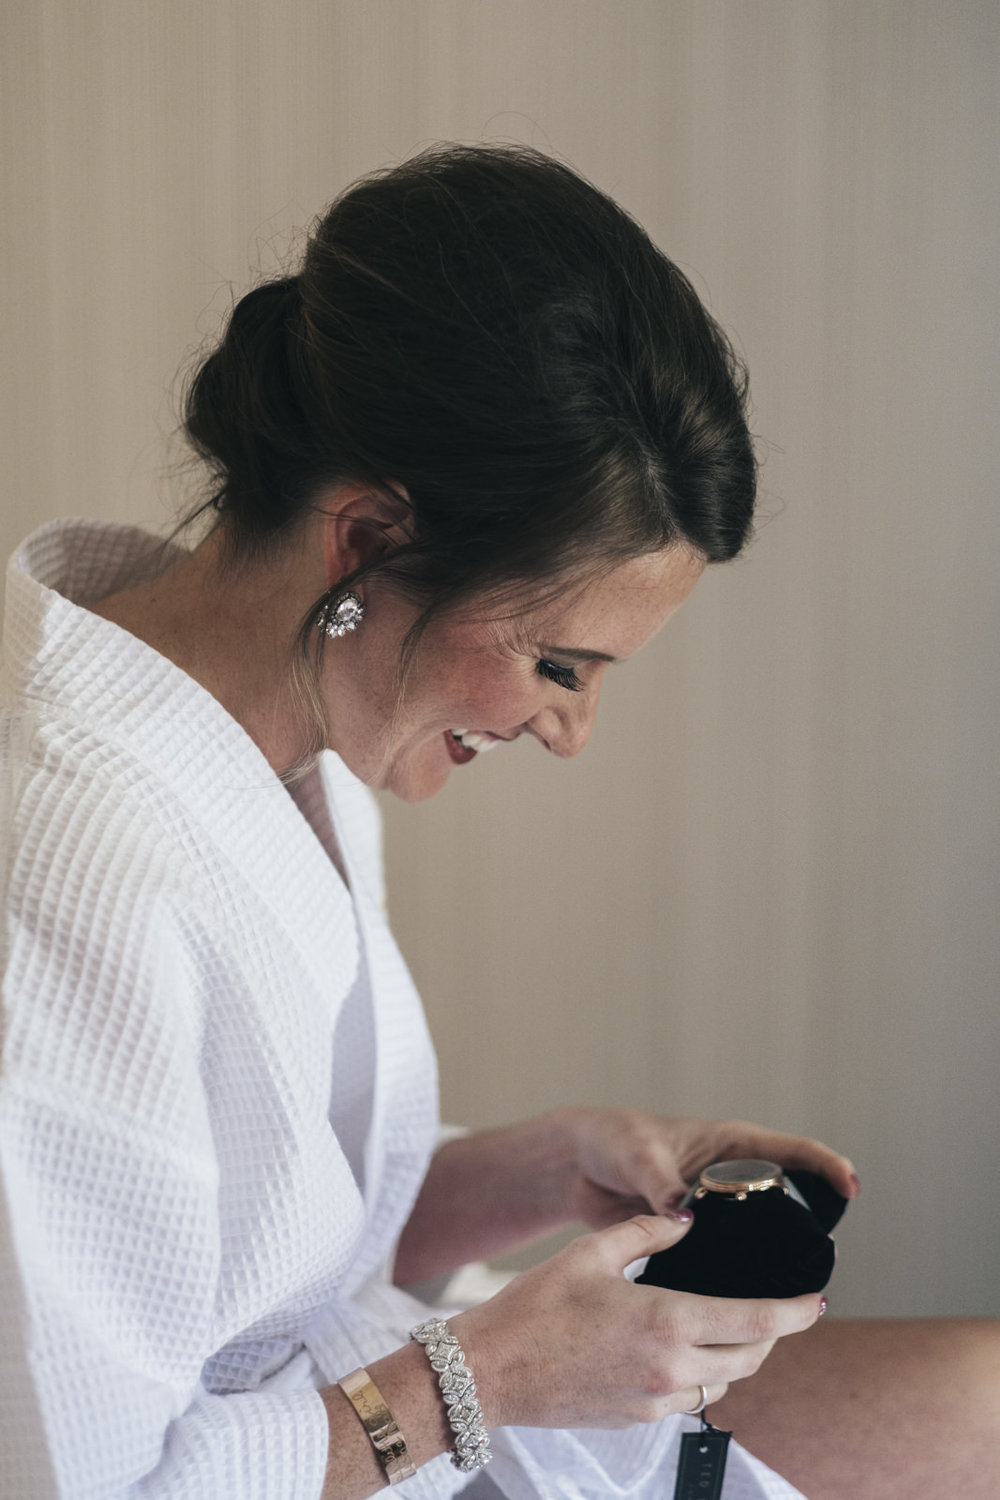 Chris received a watch from LeeAnn and opens the gift before her wedding ceremony.